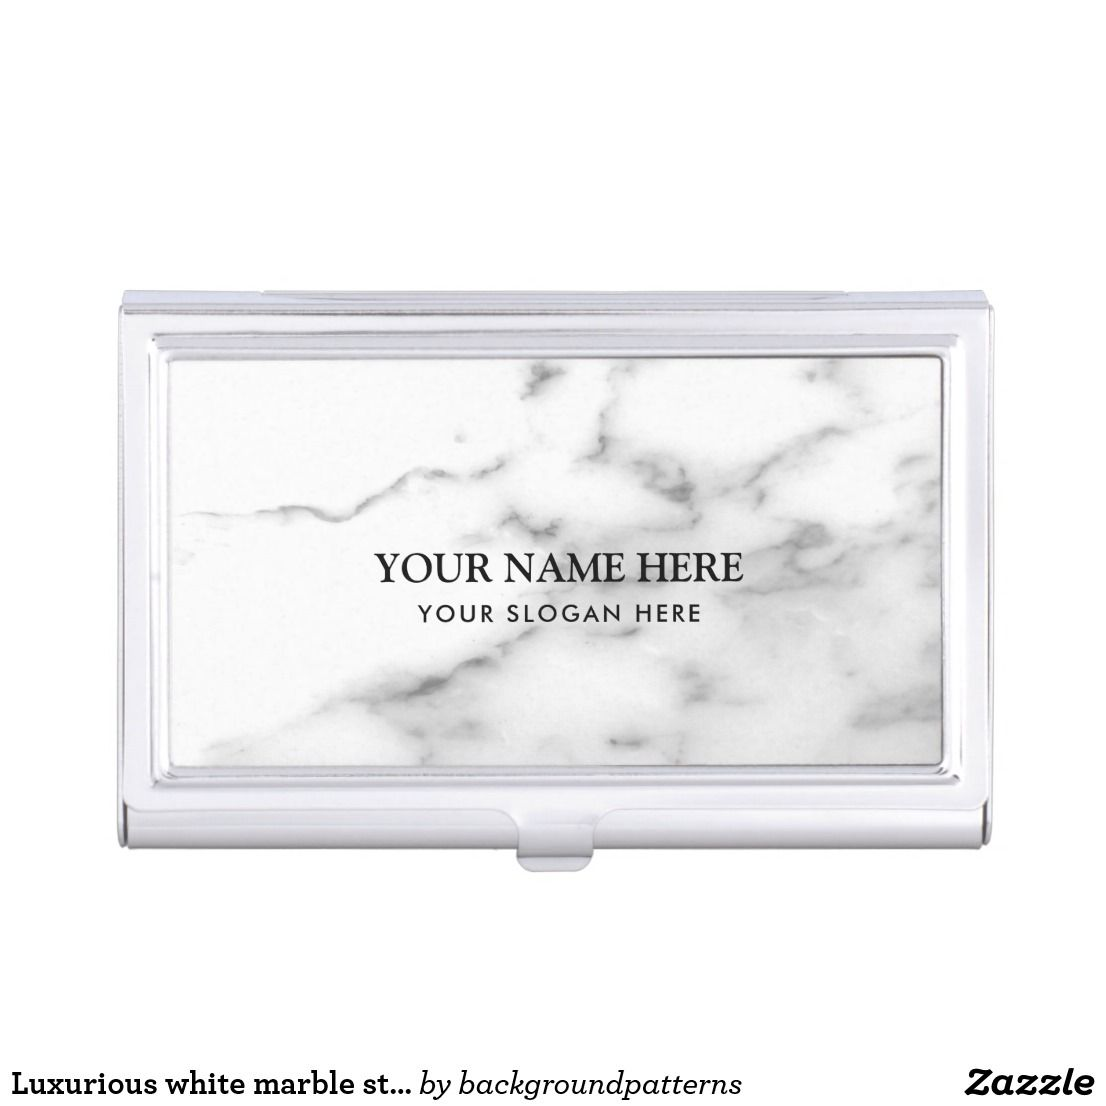 Luxurious white marble stone company name business card holder ...